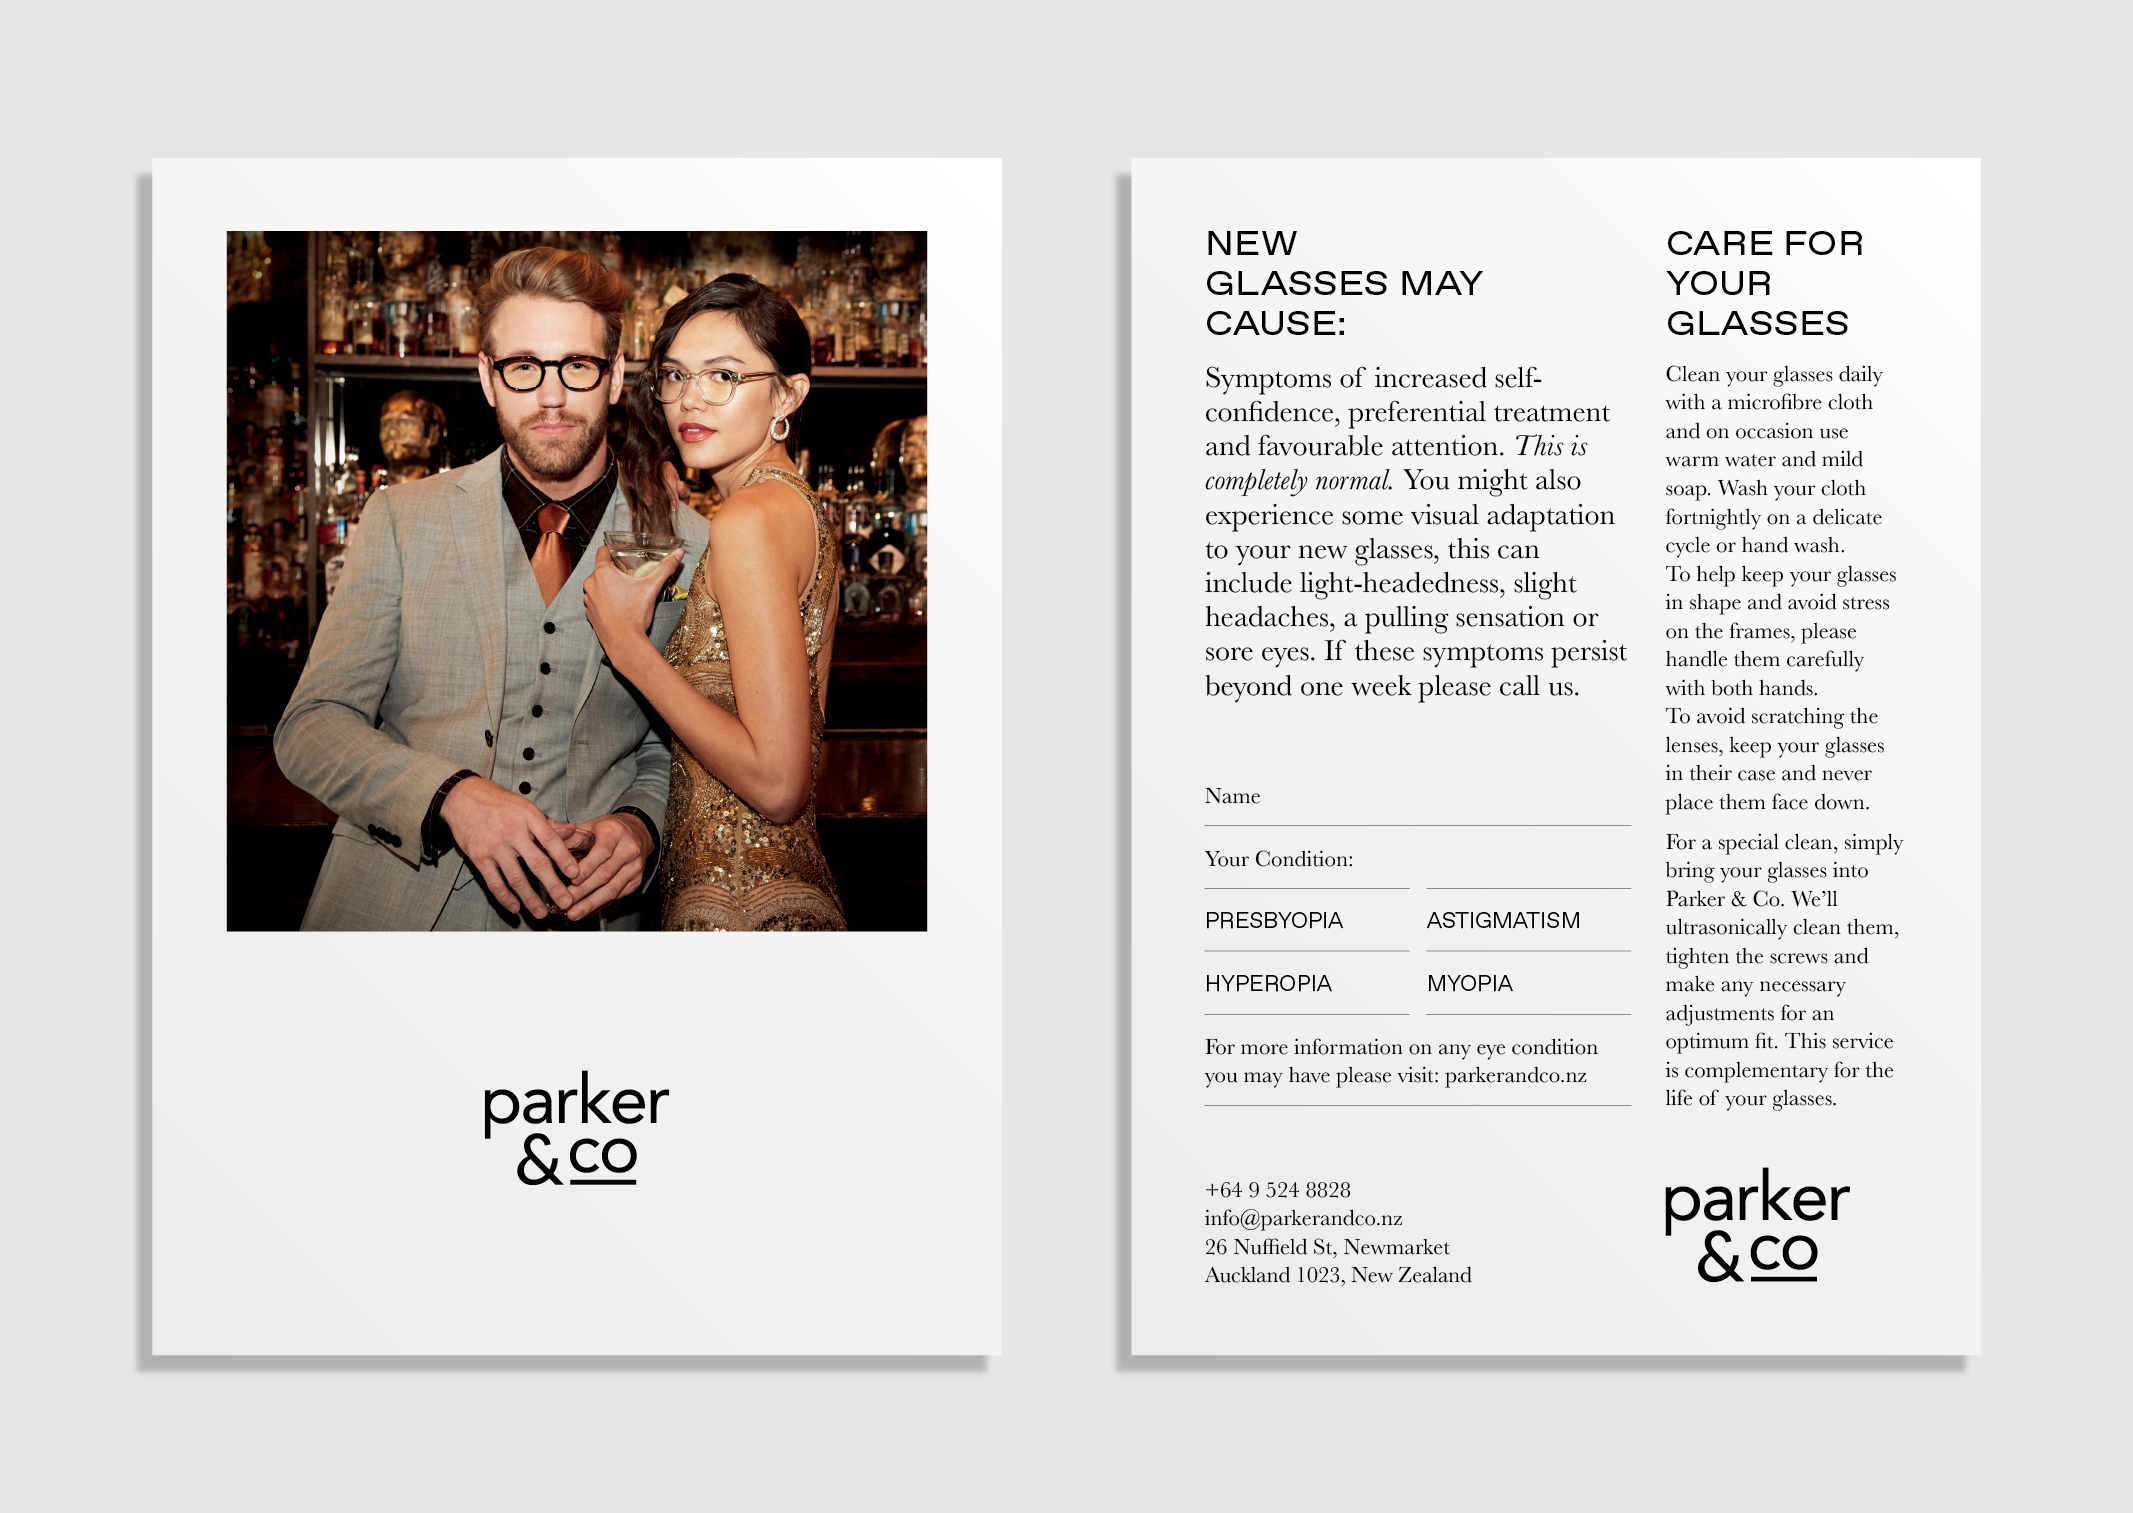 Parker and Co Branded Postcard – customer point of sale touchpoint – features Moscot brand image and after sales information